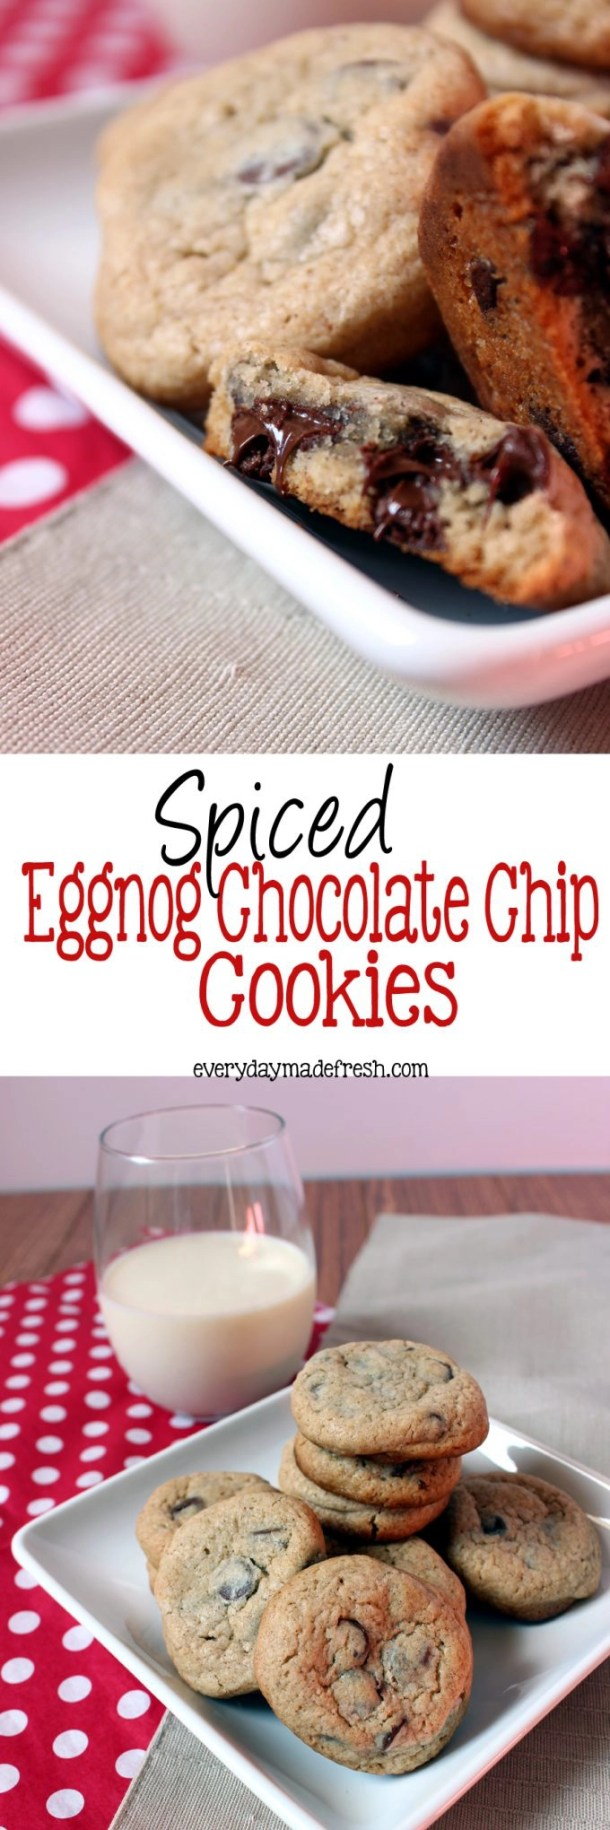 Chocolate chip cookies just got a Christmas makeover. Spiced Eggnog Chocolate Chip Cookies are bursting with Christmas flavor! | EverydayMadeFresh.com